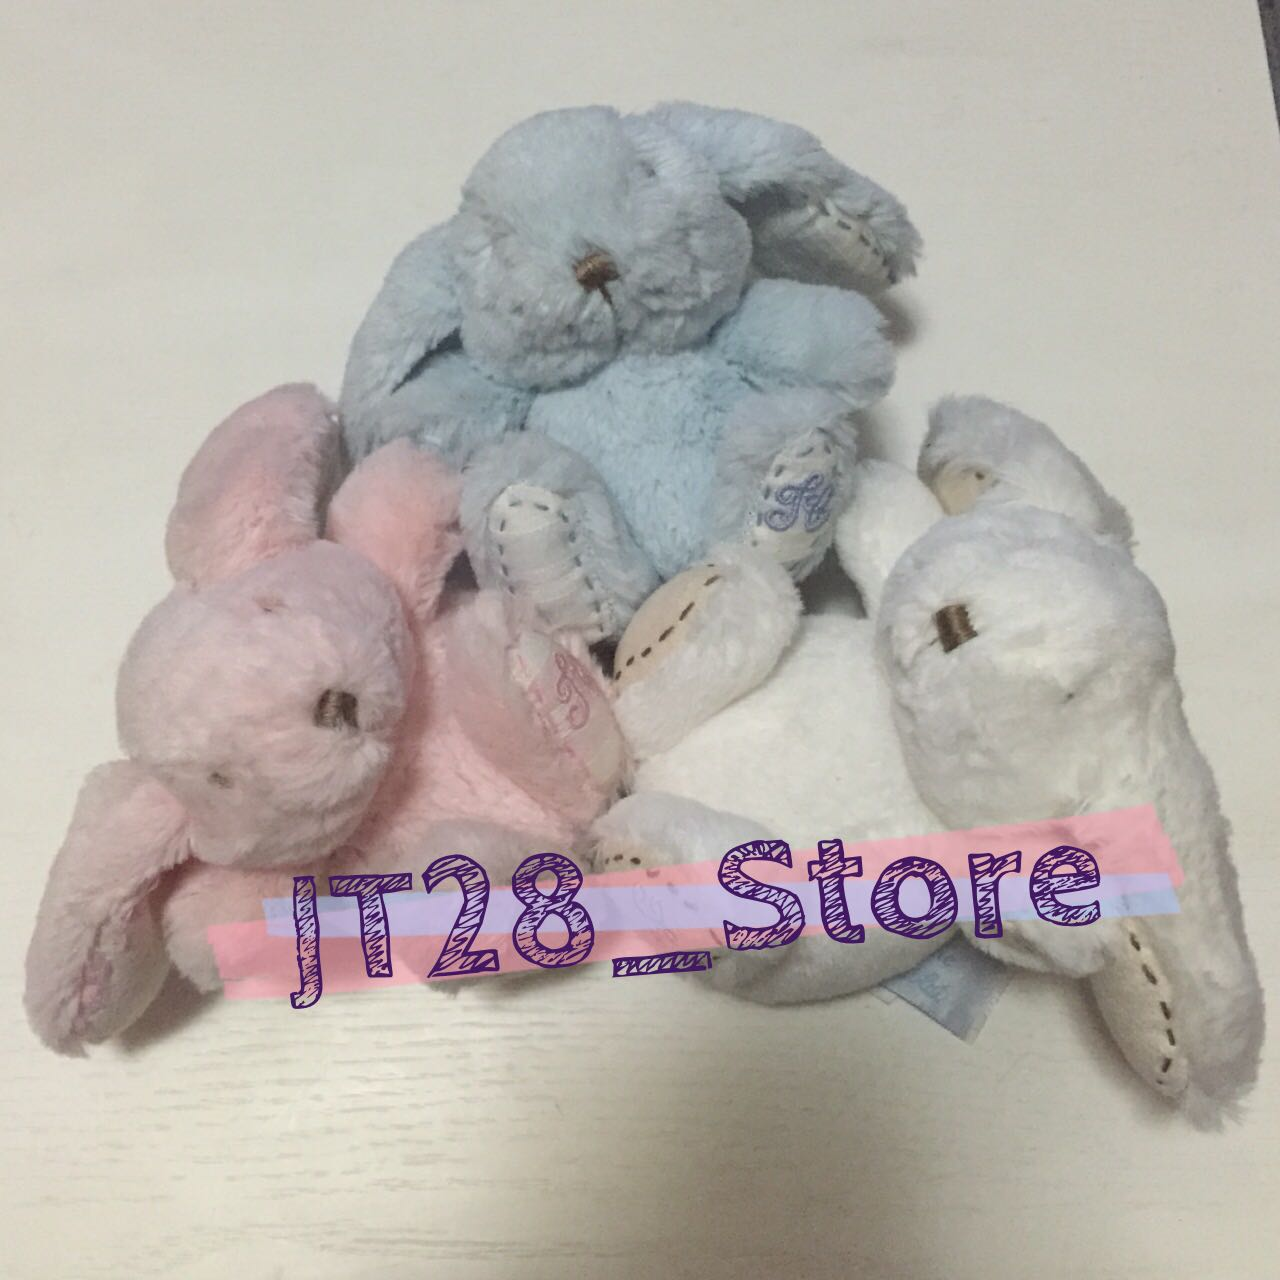 jt28_store